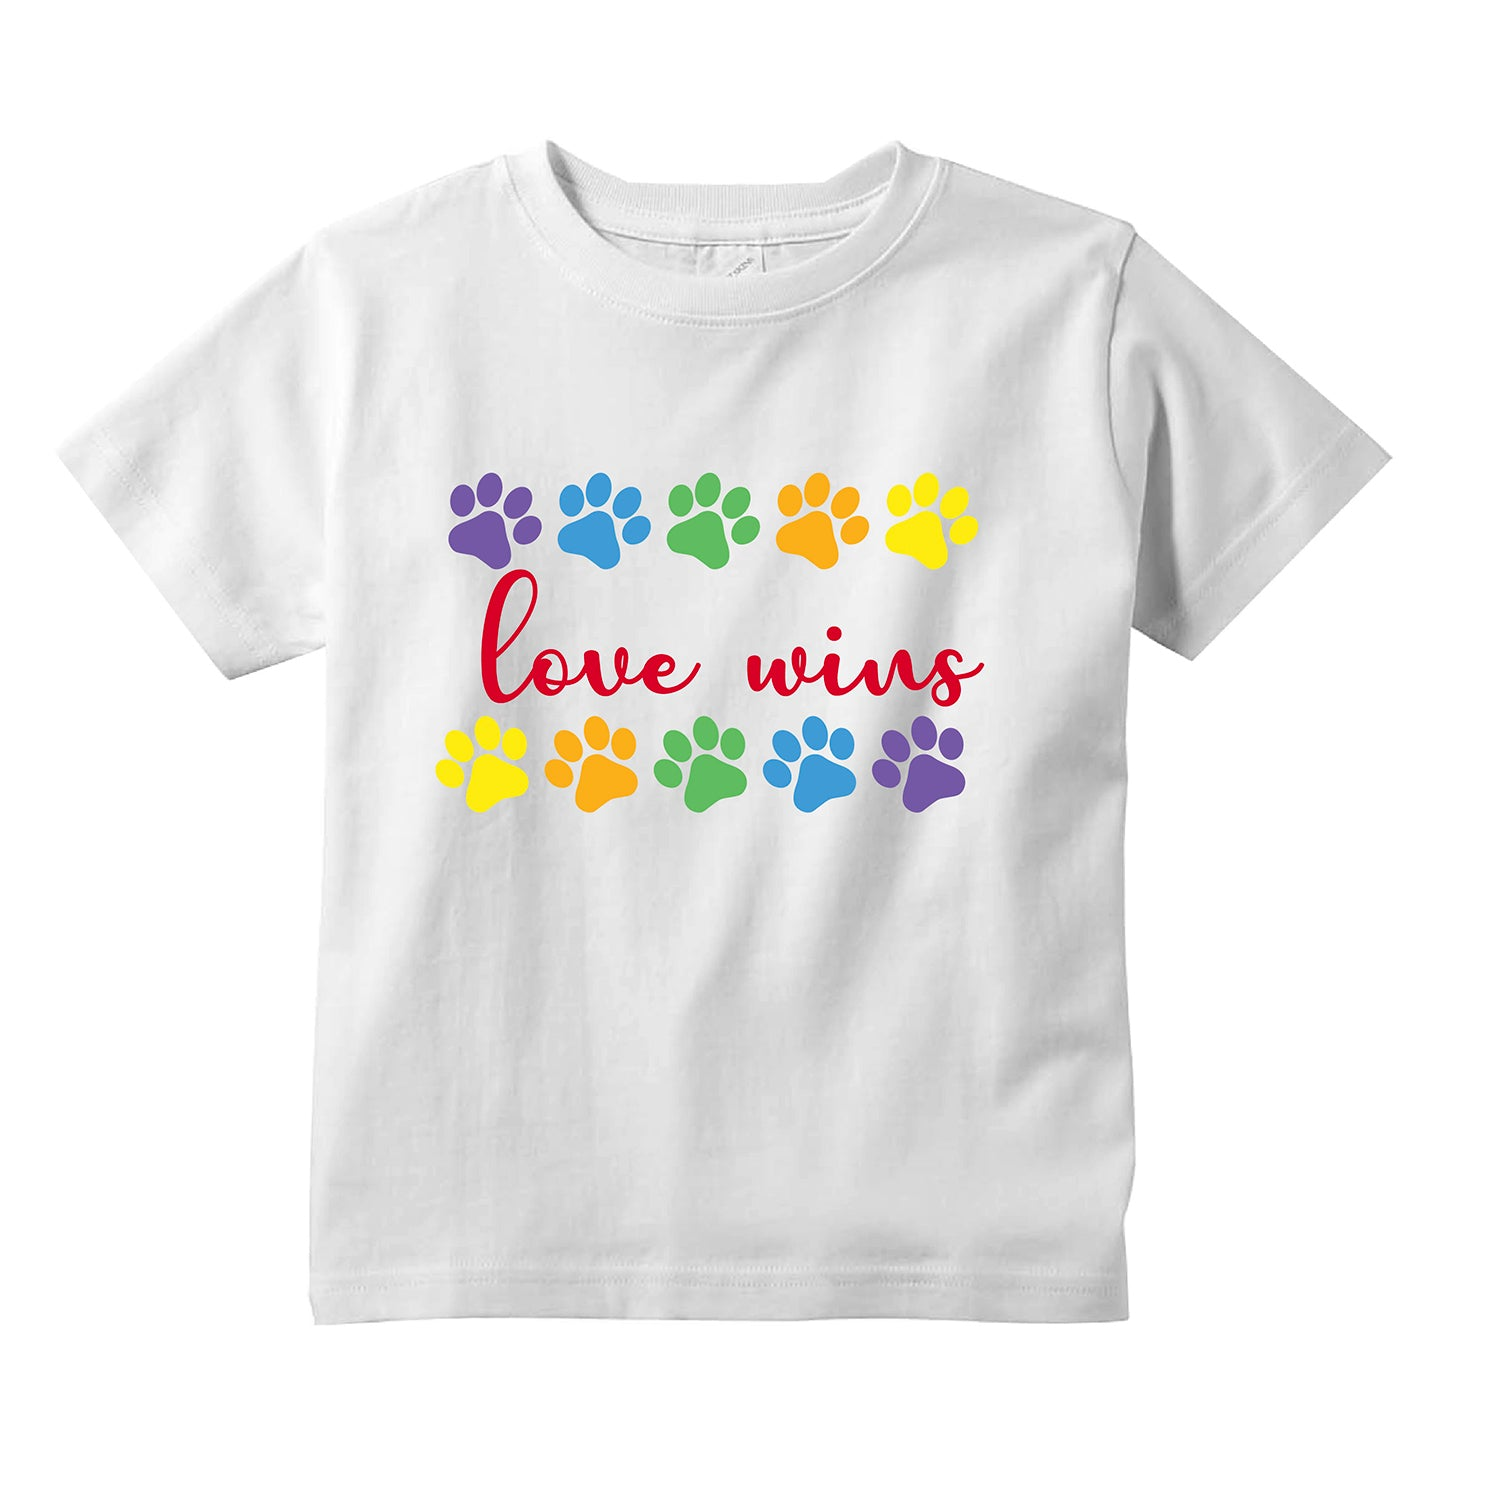 Love Wins Dog Paws Toddler T-Shirt + FREE Love is Love Pride Face Mask